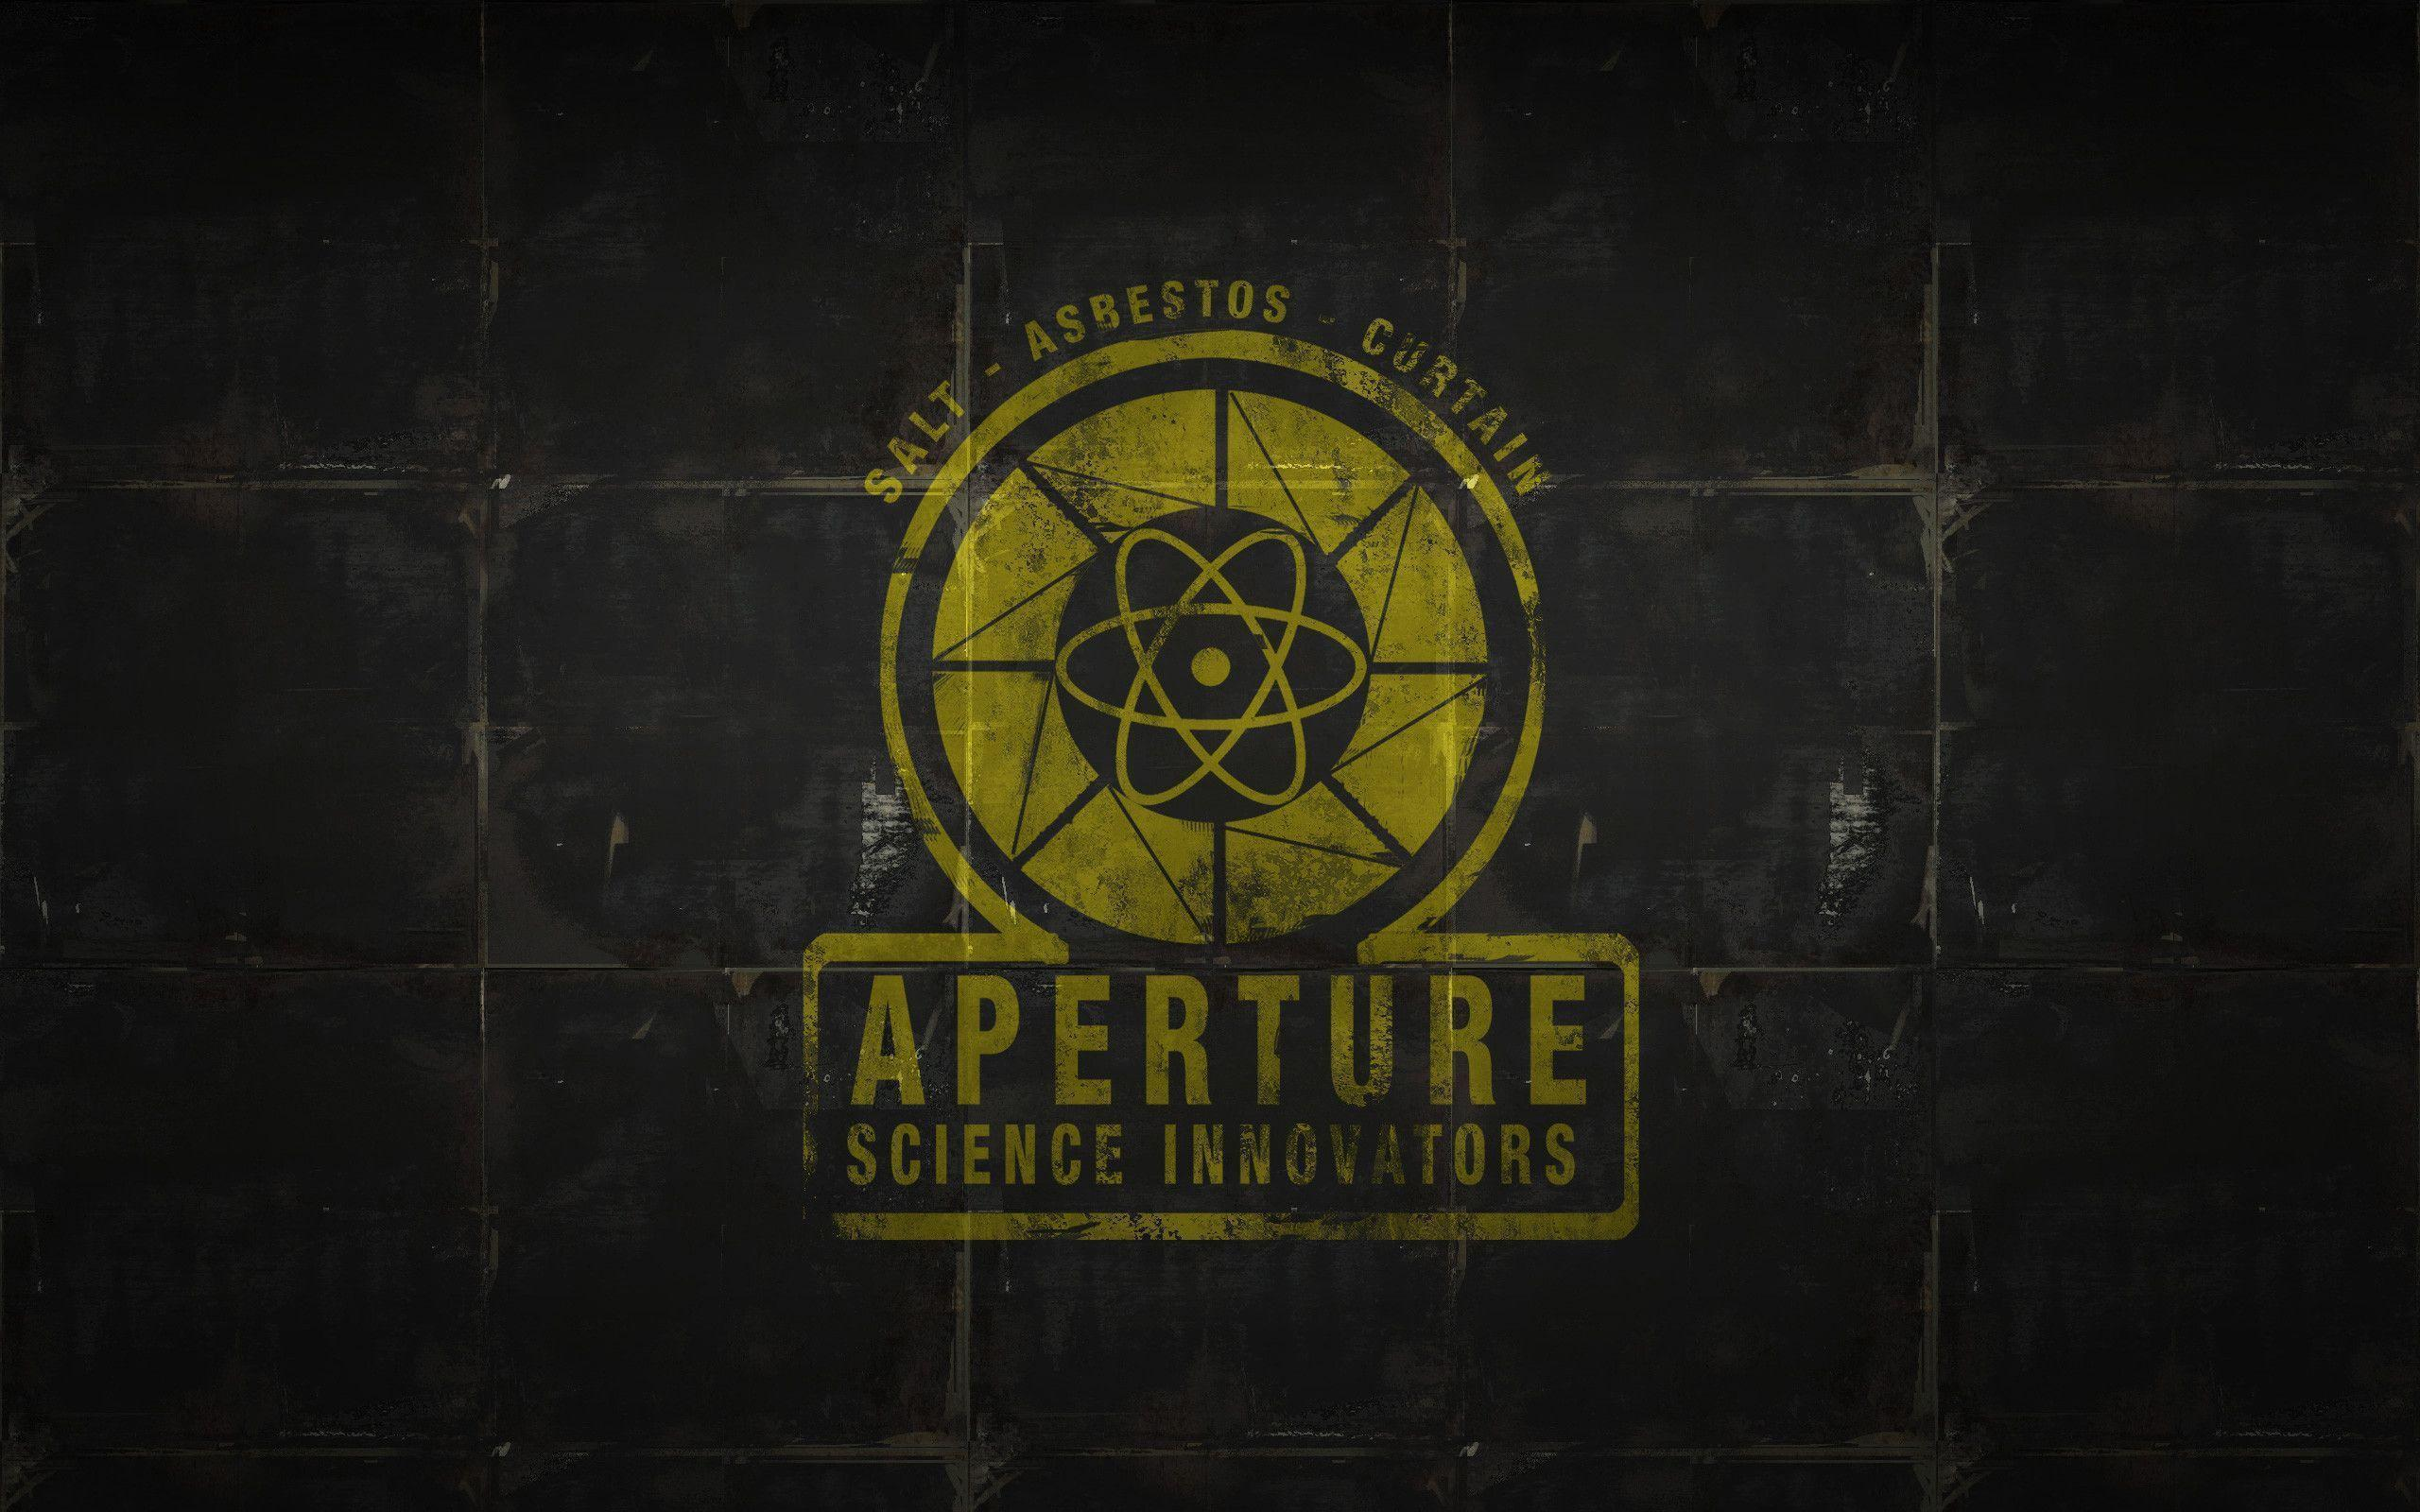 Aperture Science Wallpapers - Wallpaper CaveAperture Science Innovators Wallpaper